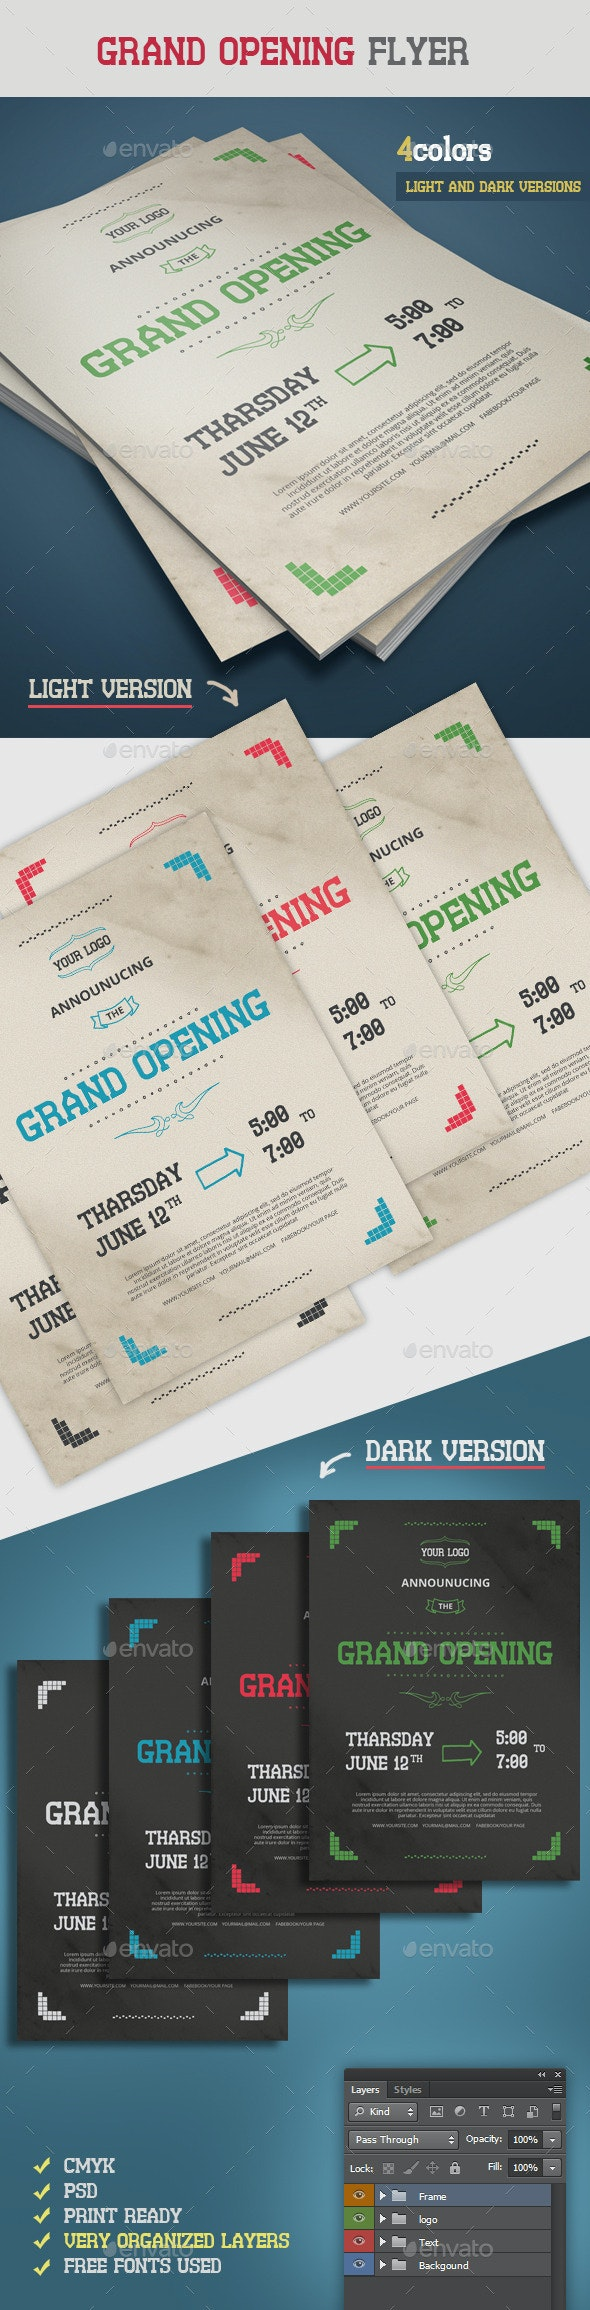 Retro Grand Opening Flyer - Events Flyers